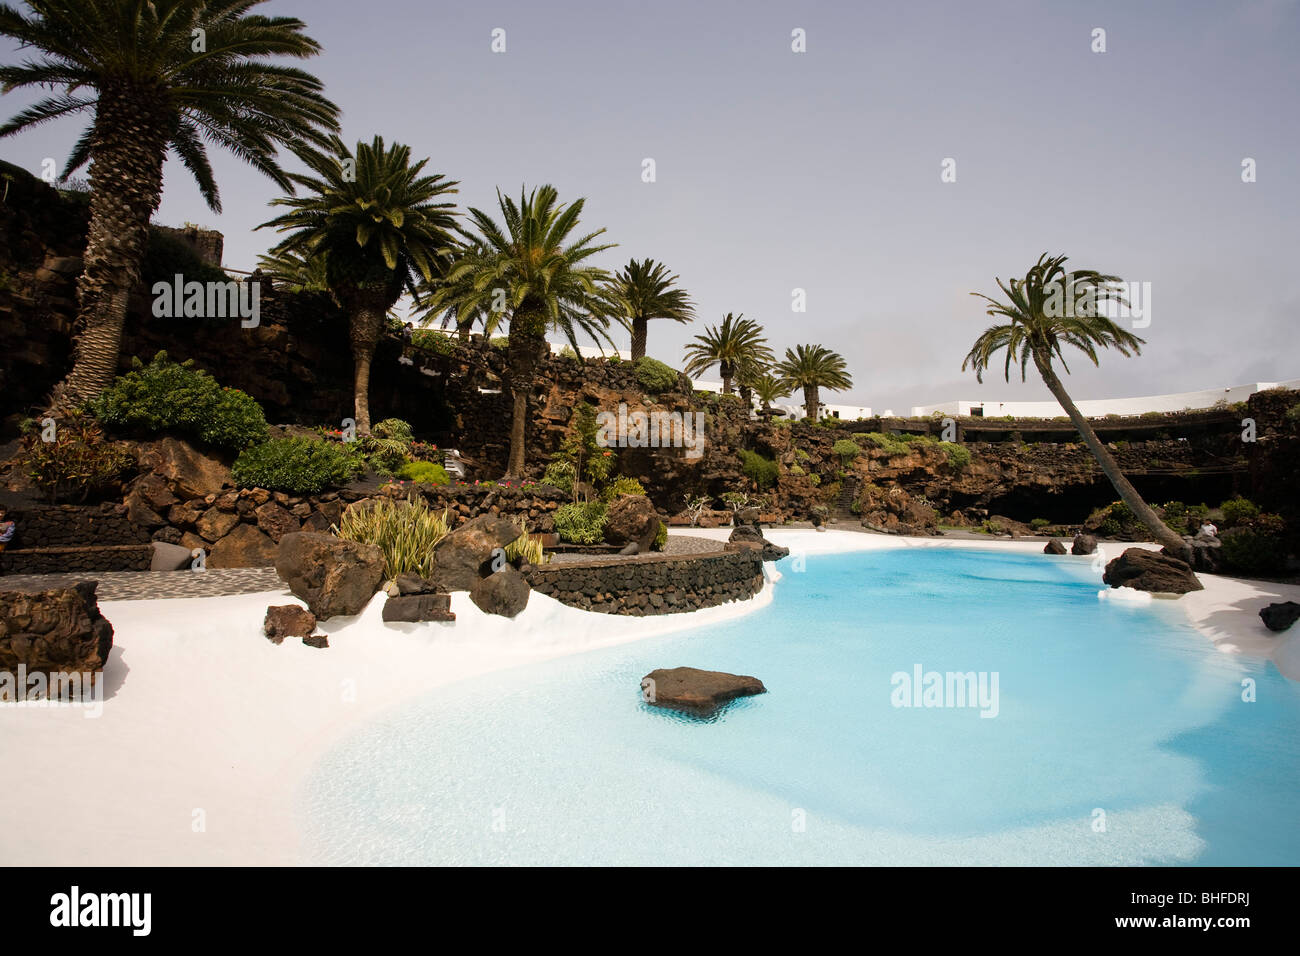 Swimming Pool With Palm Trees Near A Volcanic Cave Jameos Del Agua Stock Photo Royalty Free